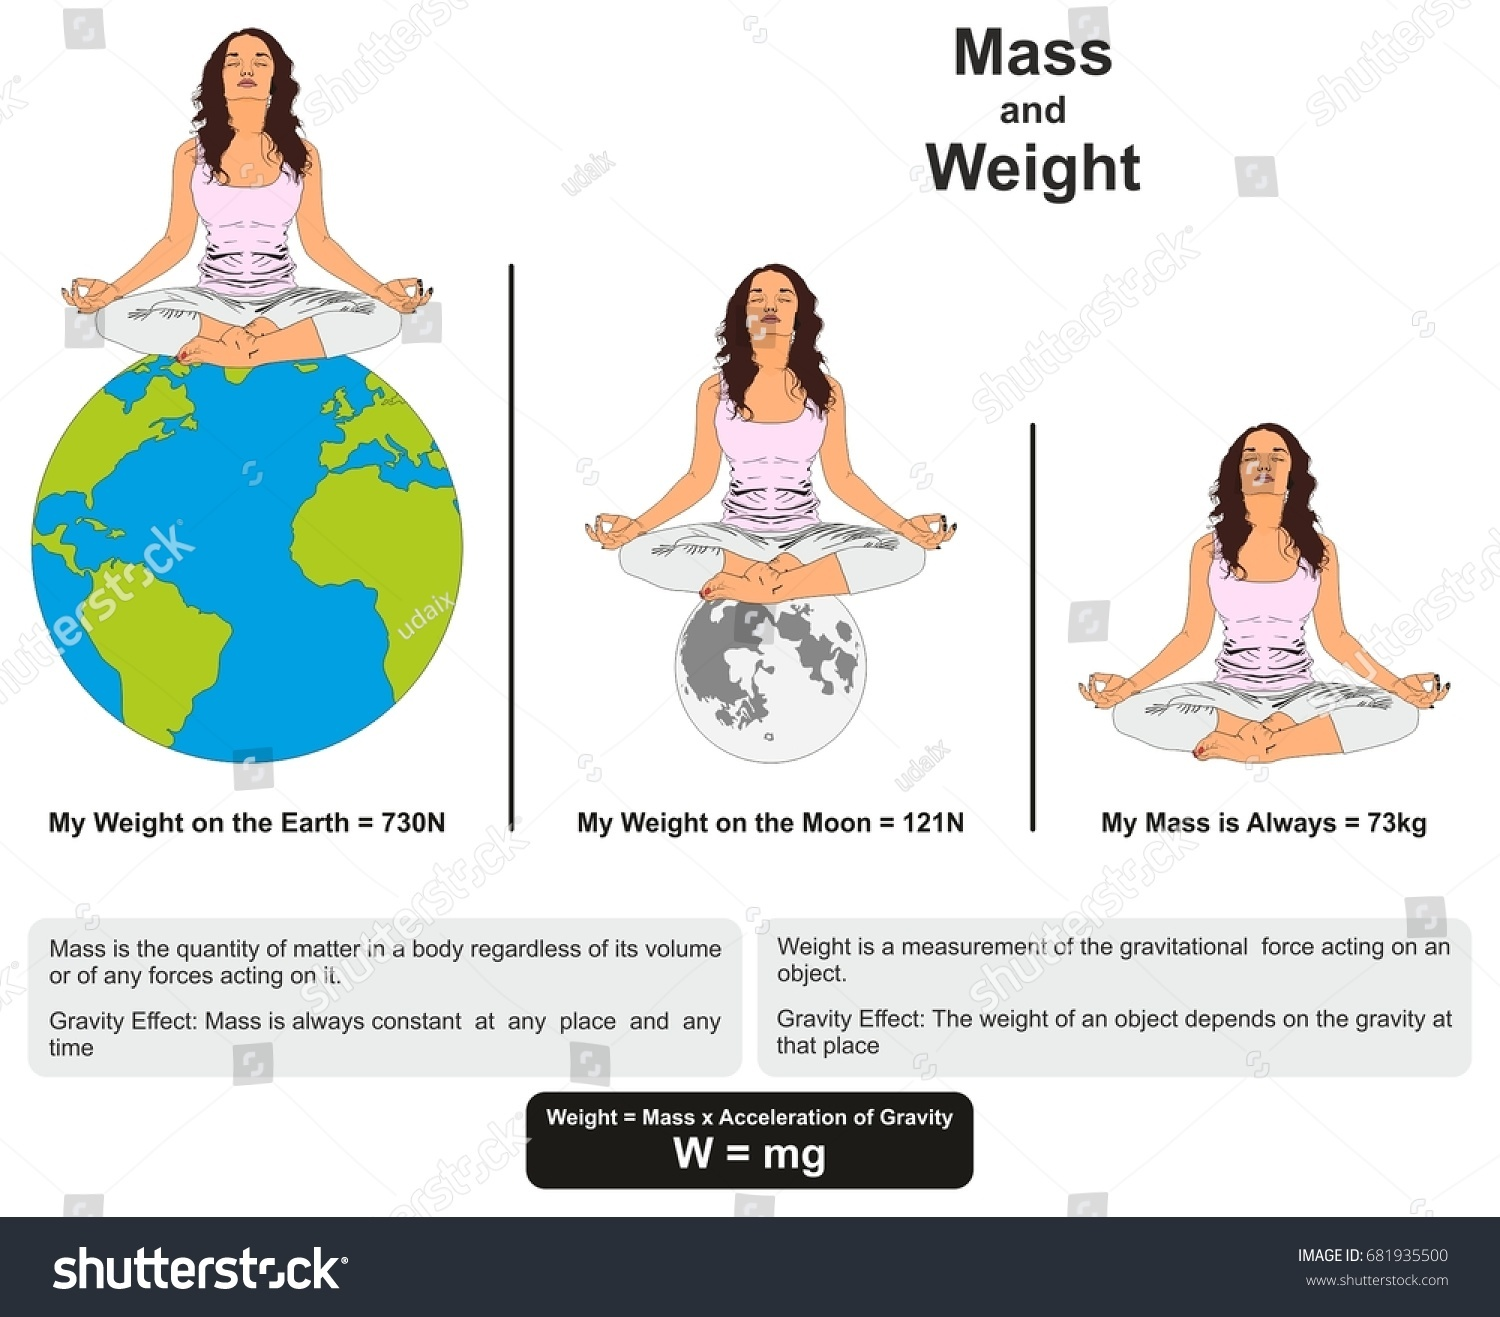 Mass Weight Physics Lesson Infographic Diagram Stock Illustration Acceleration Due To Gravity The Free Body For This And Showing Difference Between Them With Example On Earth